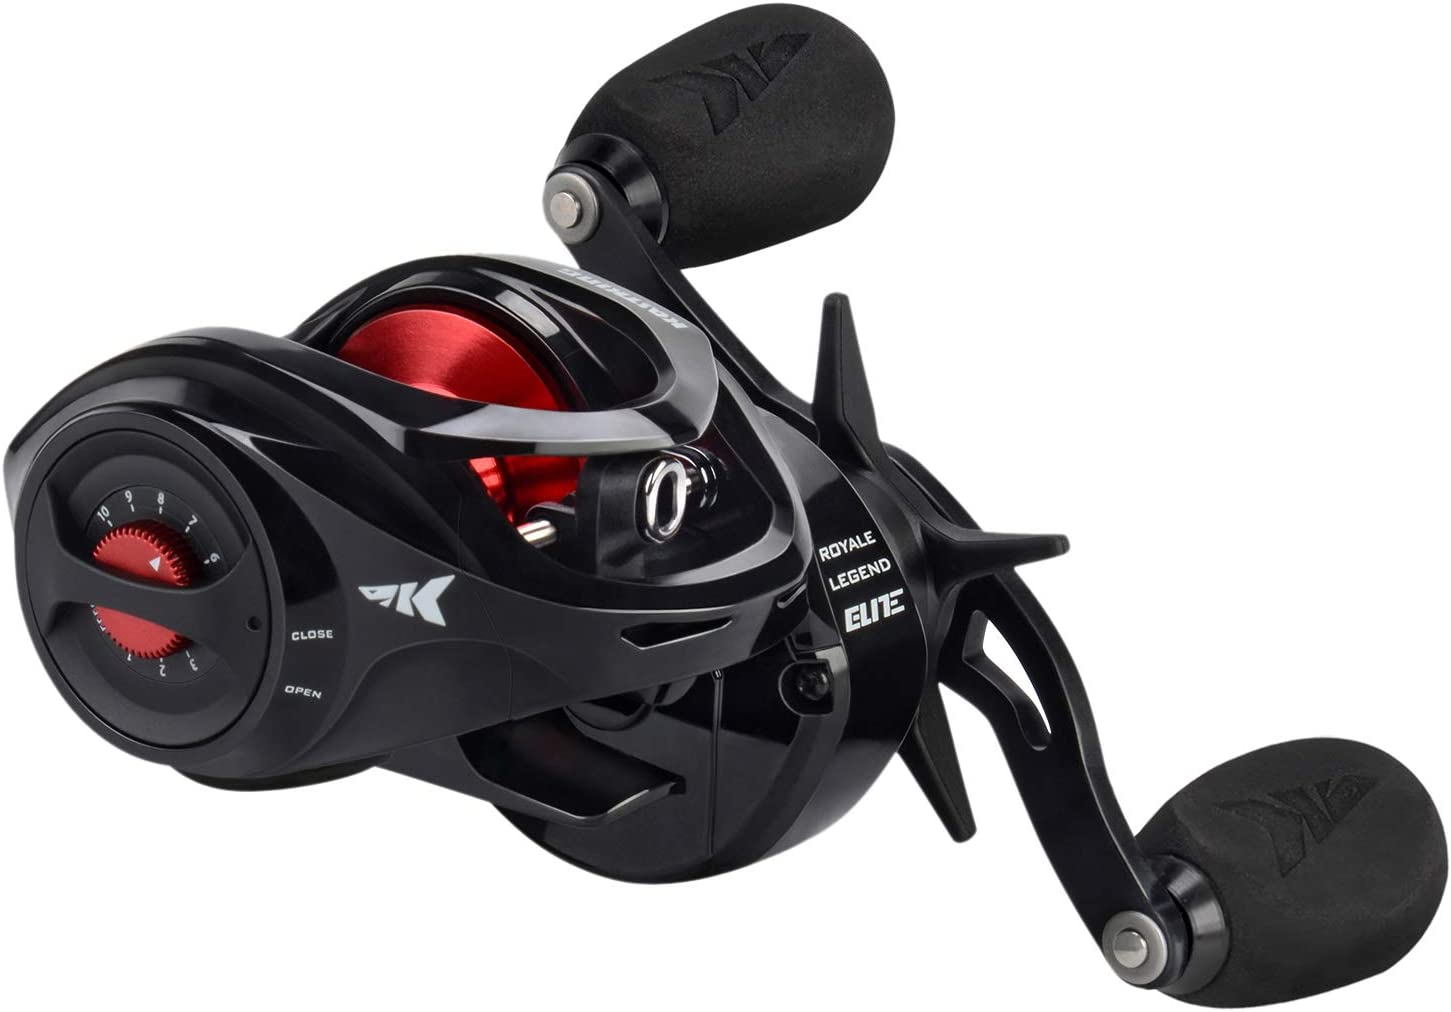 KastKing Royale Legend Baitcasting Reels – Elite Series Fishing Reel, Palm Perfect Compact Design, Ergo-Twist Opening, Swing Wing Side Cover, 4 Coded Gear Ratios, 11 1 BB, Magnetic Braking System.